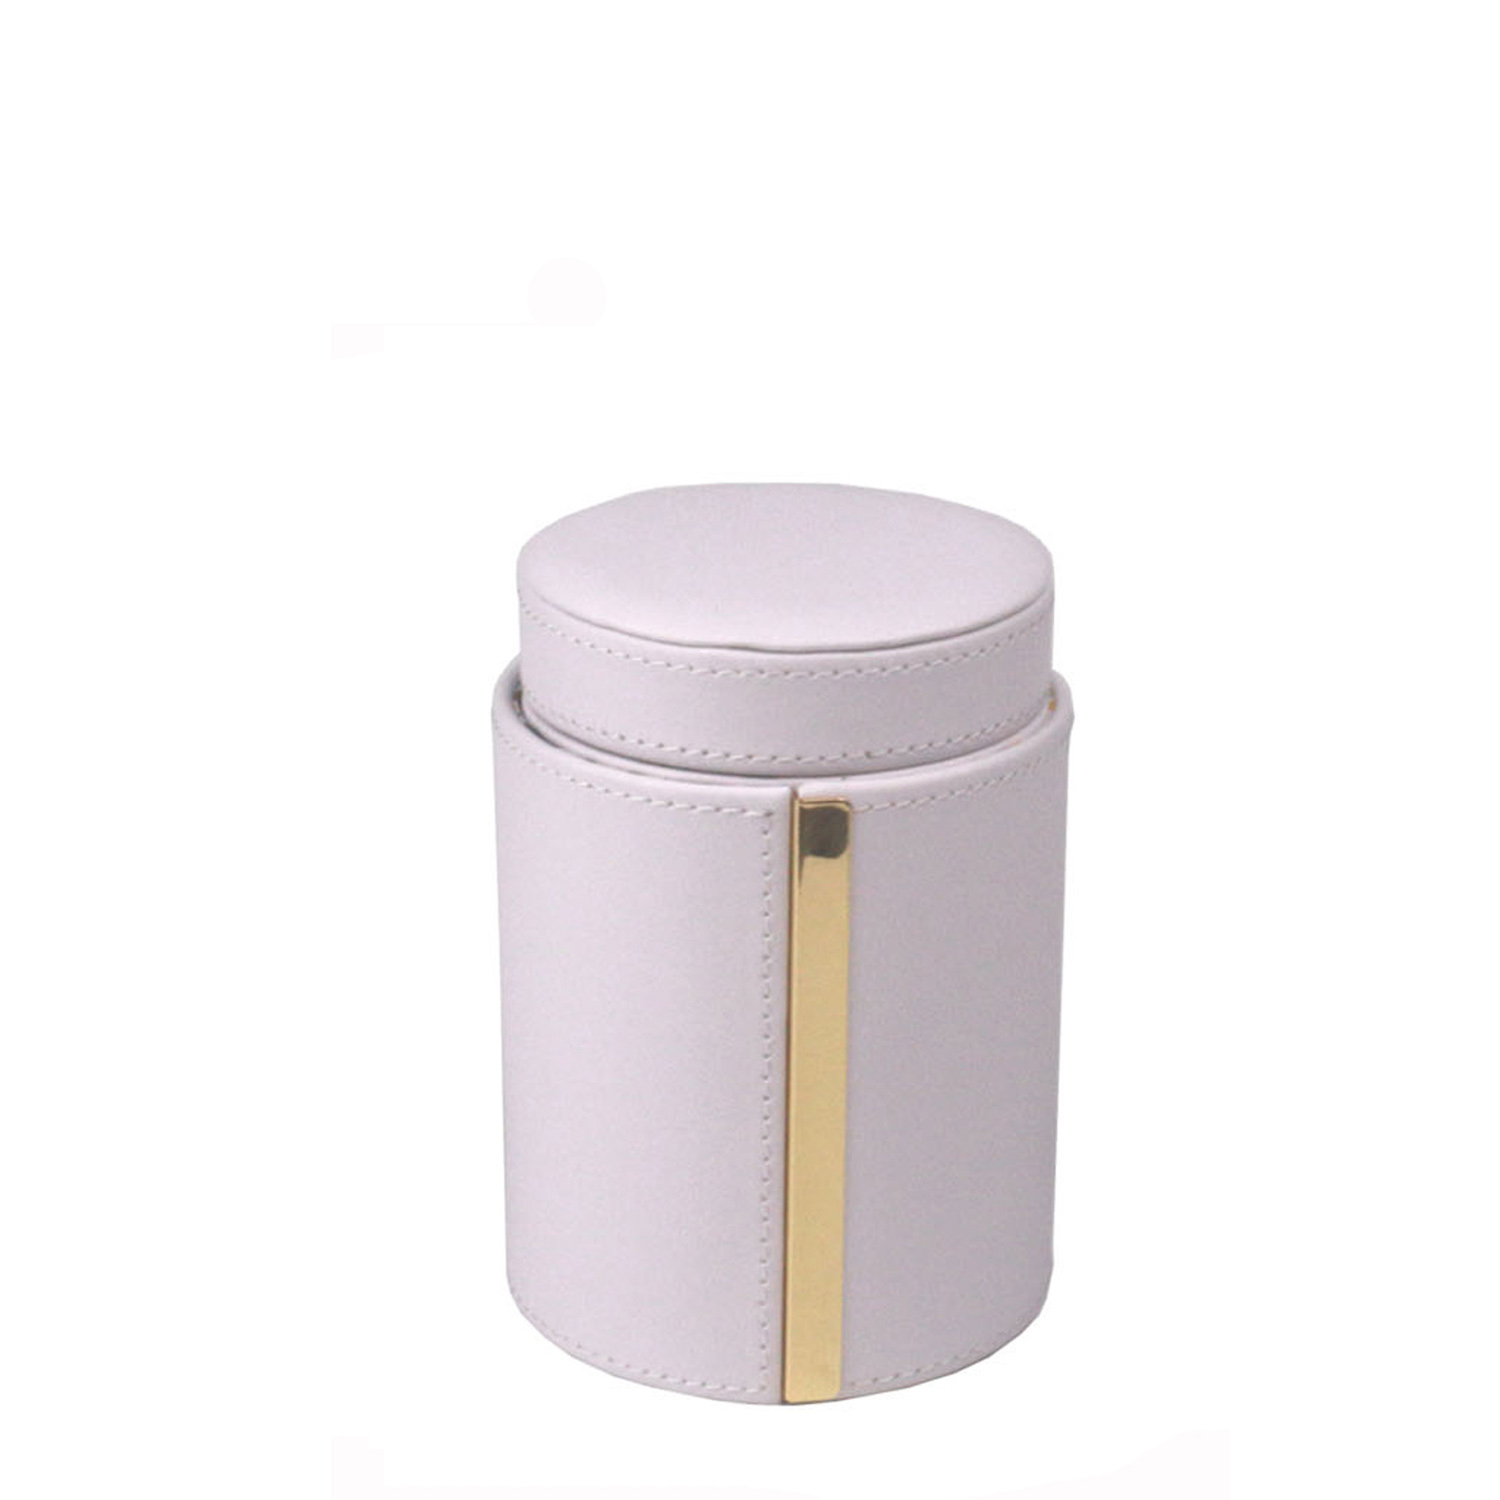 White round shaped mirror multifuntion travel jewelry storage box